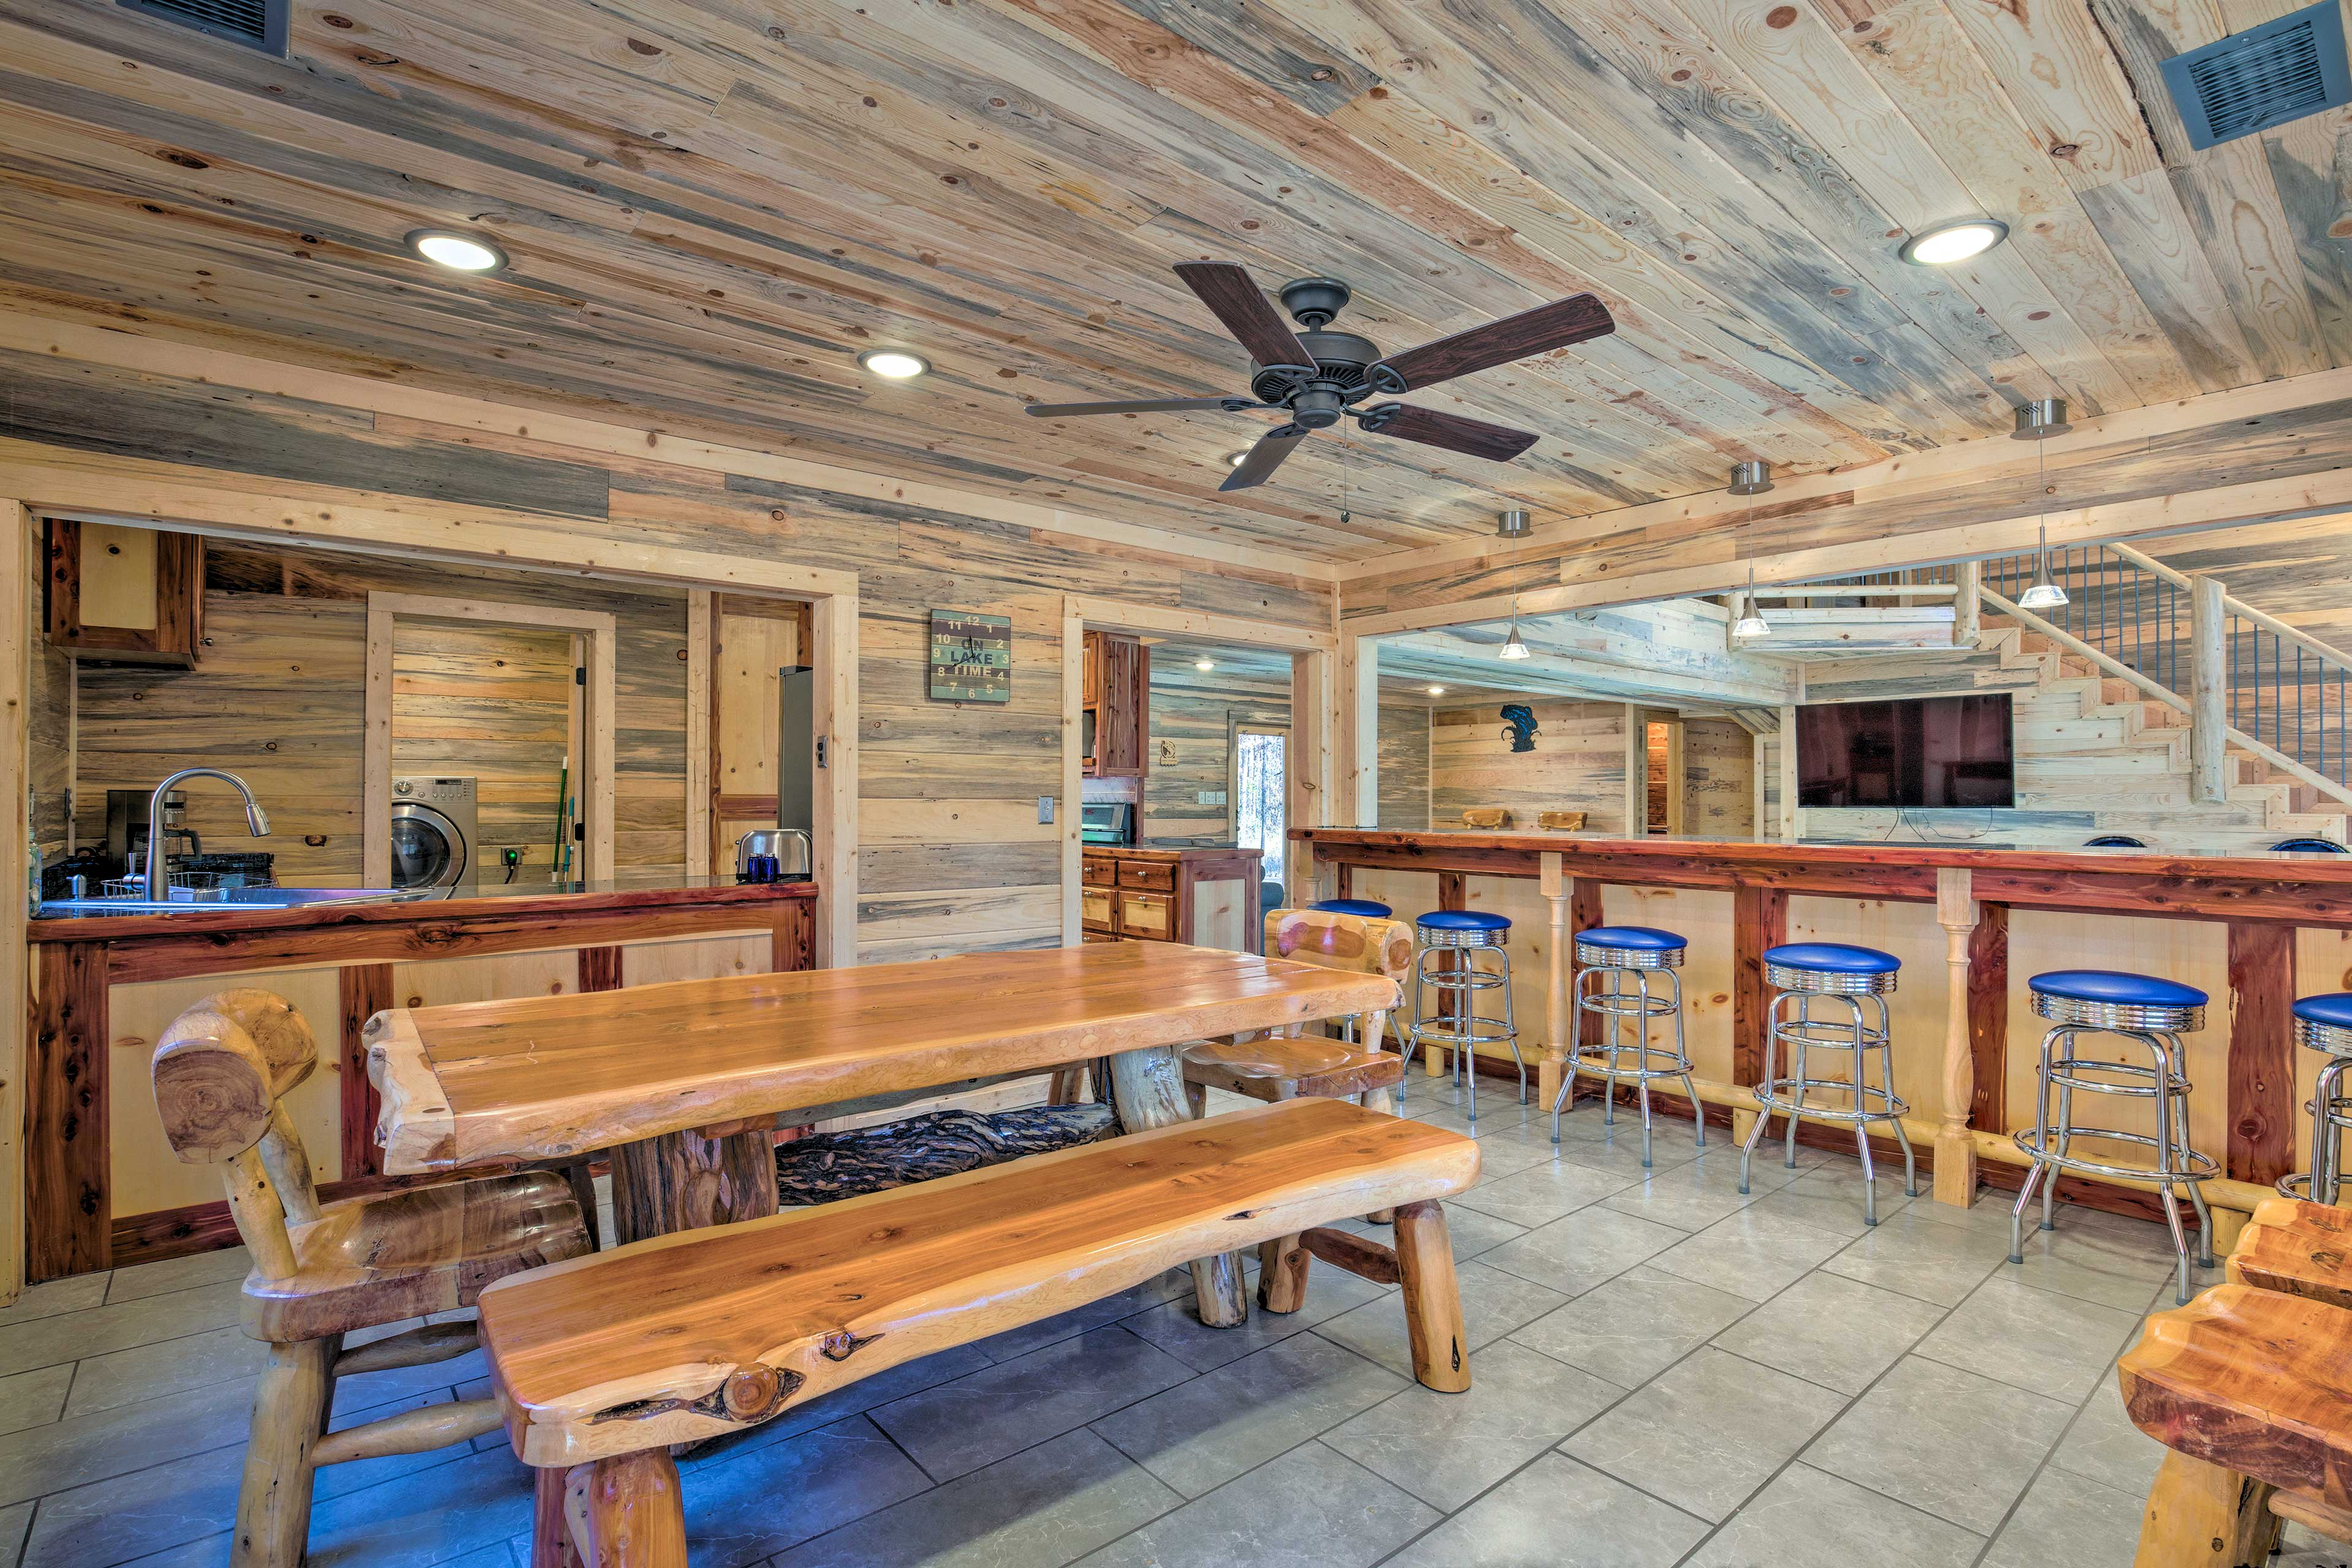 Find additional seating at the rustic wooden table nearby.